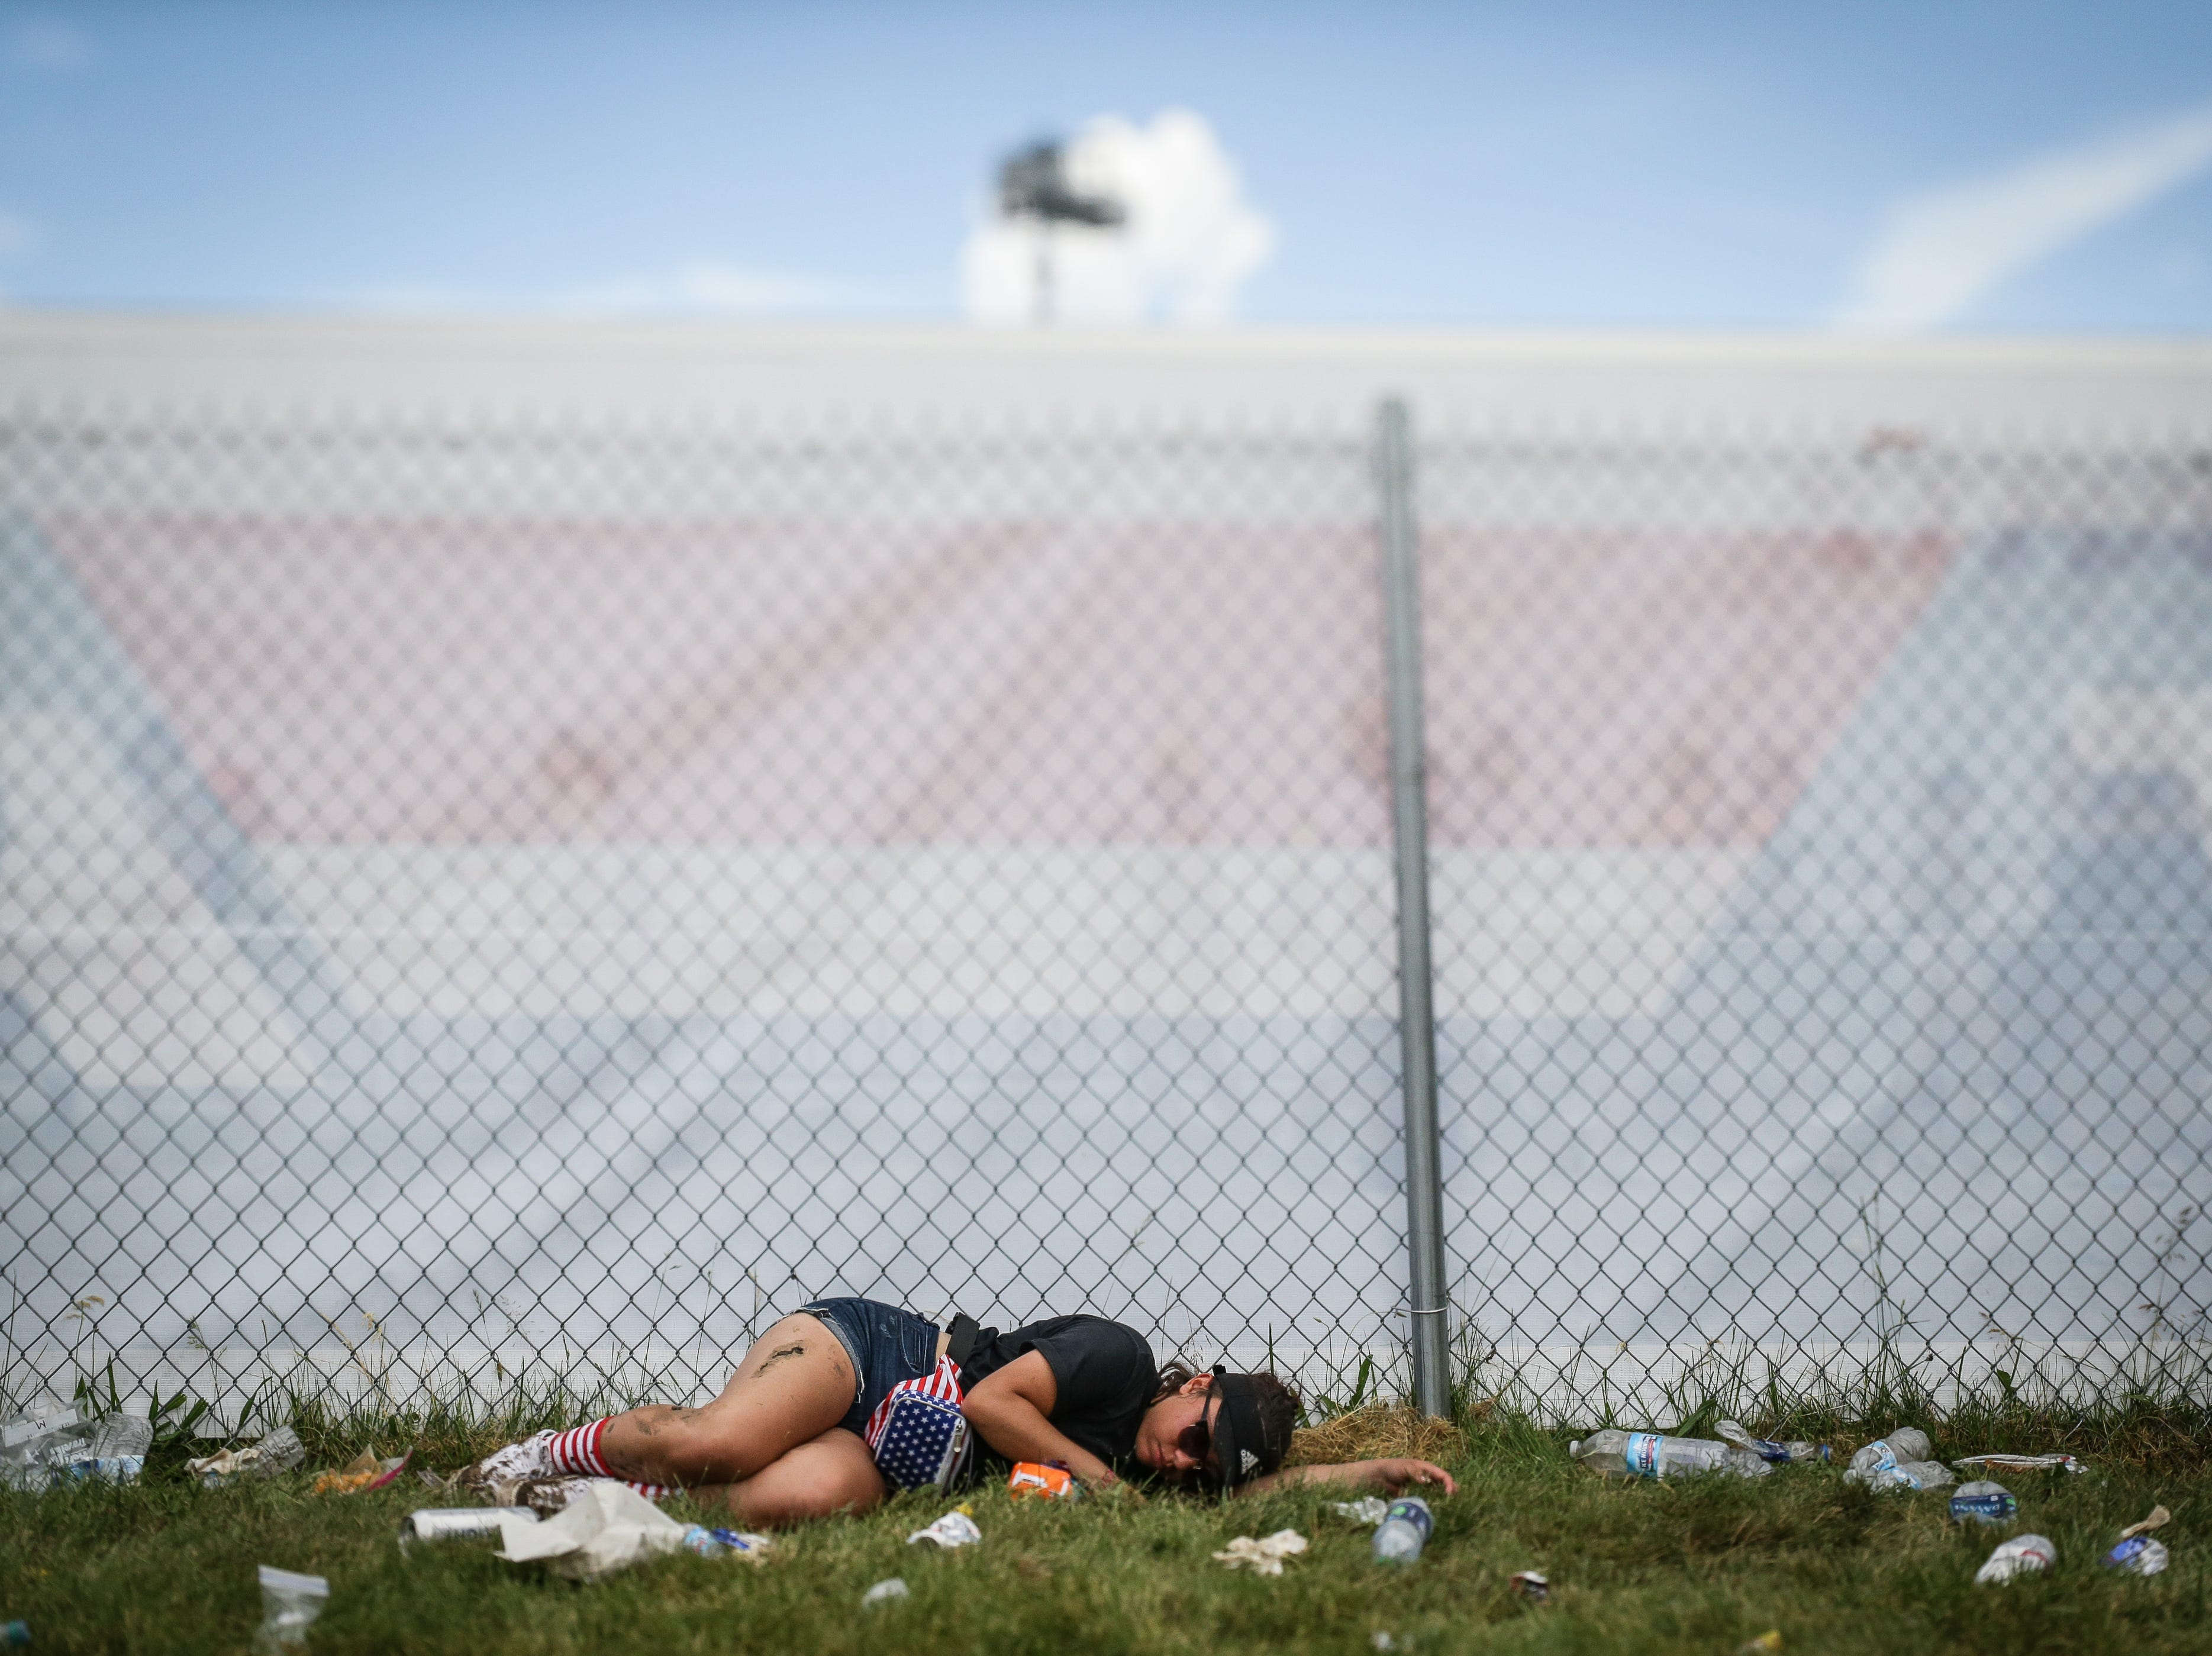 A fan lays down in the Snake Pit during the 102nd running of the Indy 500 at Indianapolis Motor Speedway on Sunday, May 27, 2018.